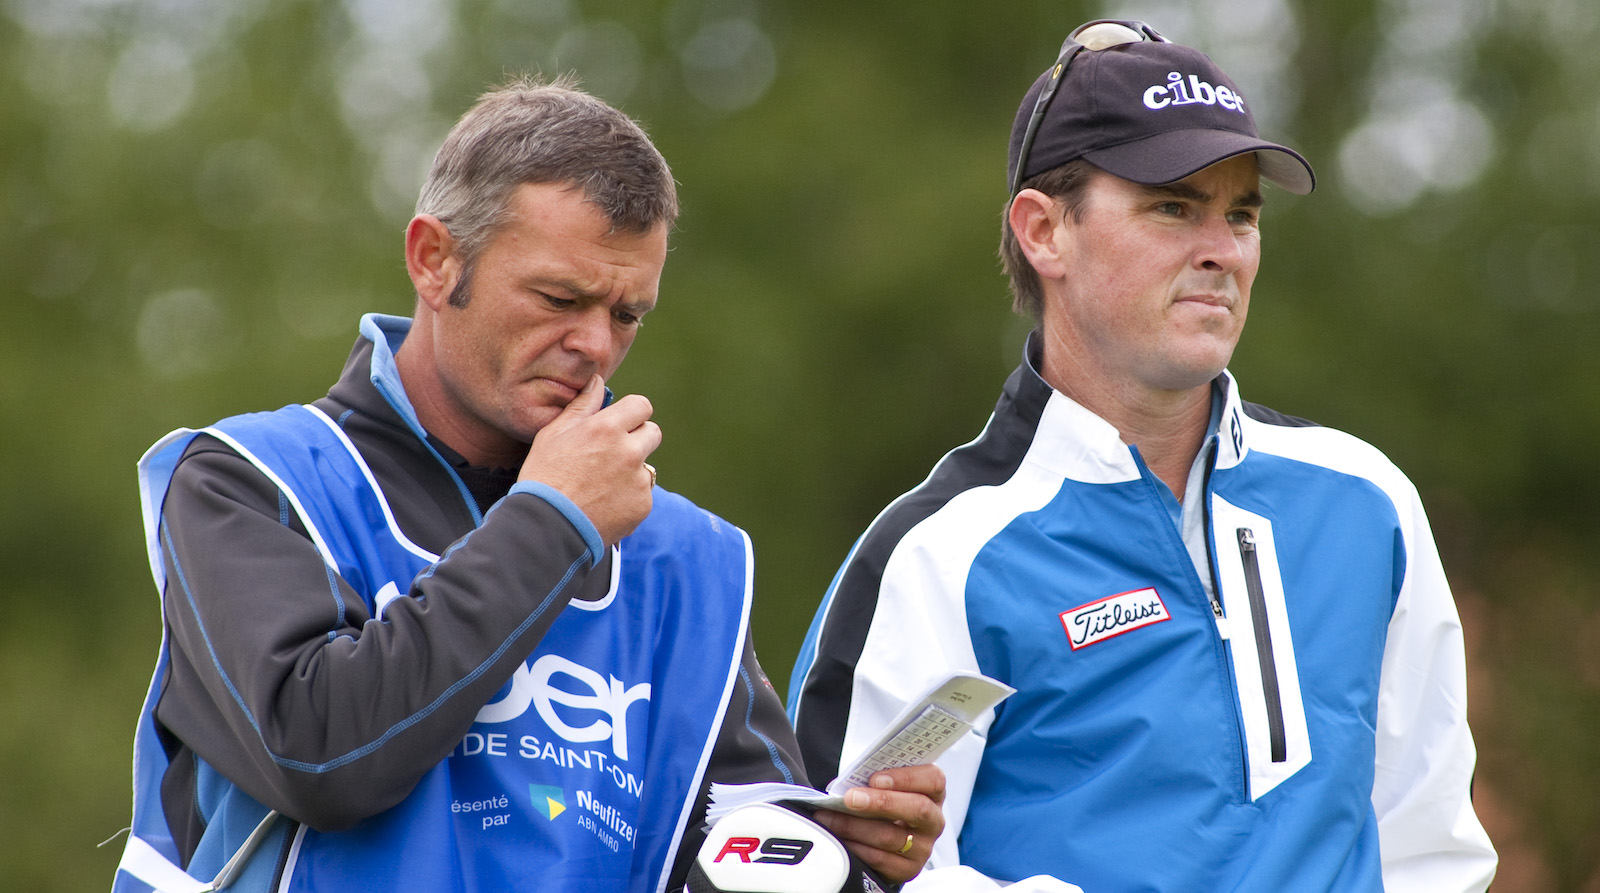 Advantages of Booking A Caddie for Your Golf Day